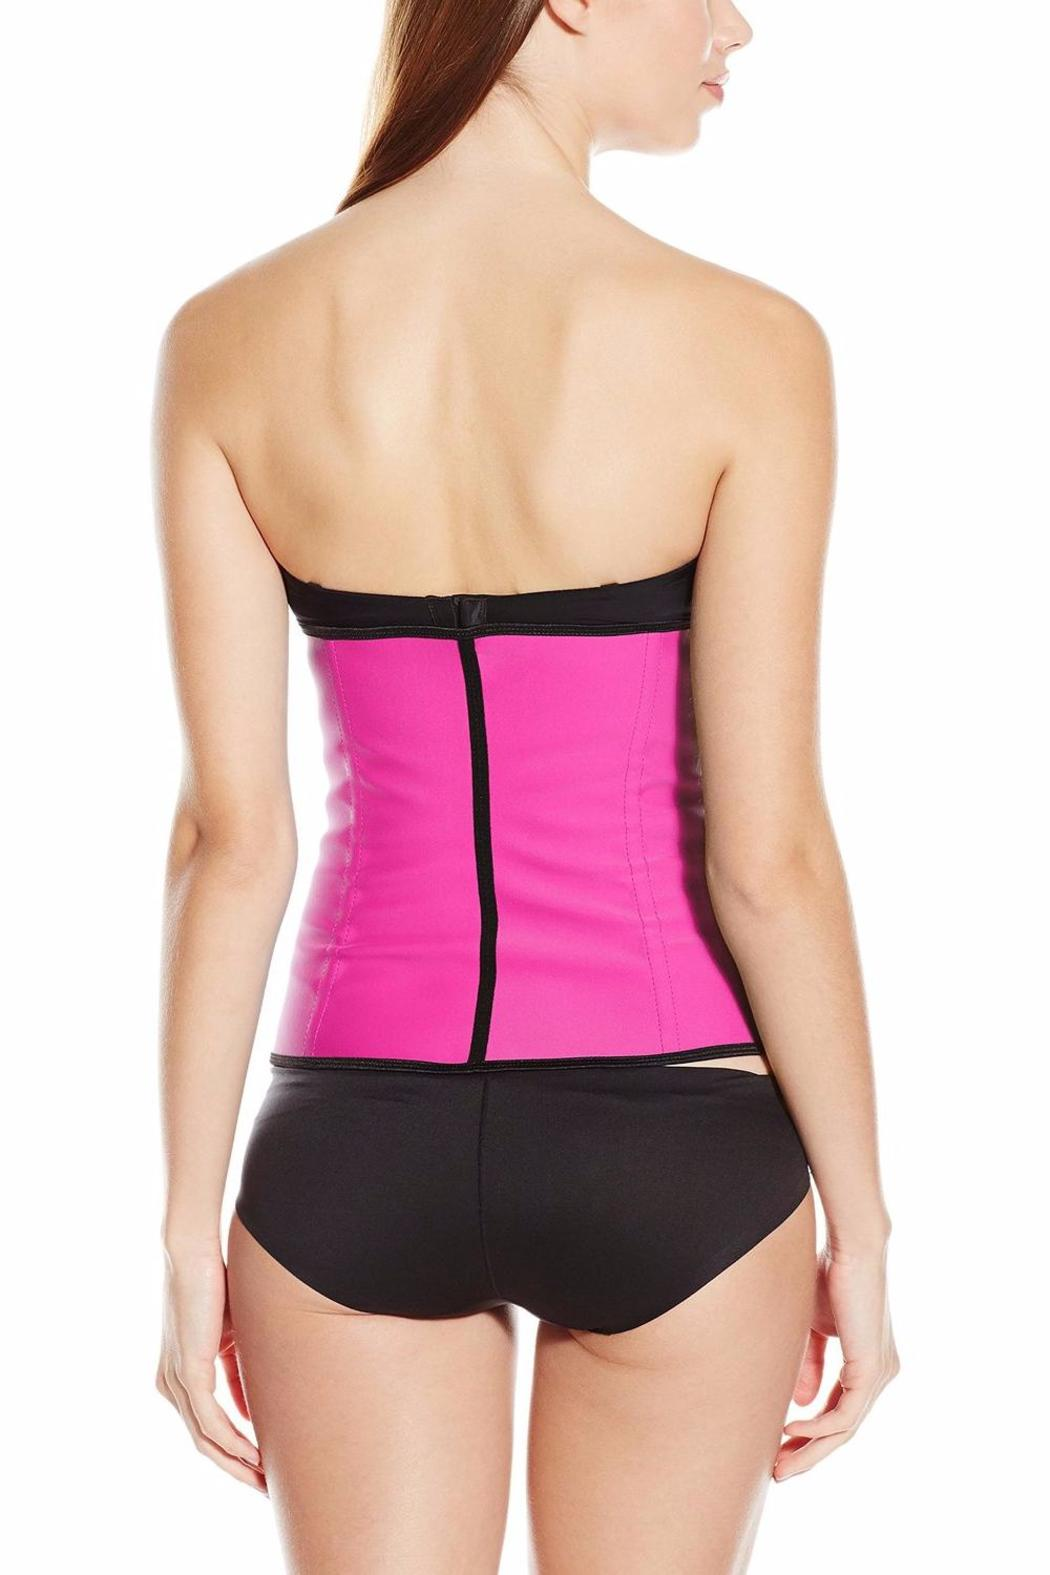 F i x shapewear by wunderwear slimming waist corset from for Slimming undergarments for wedding dress